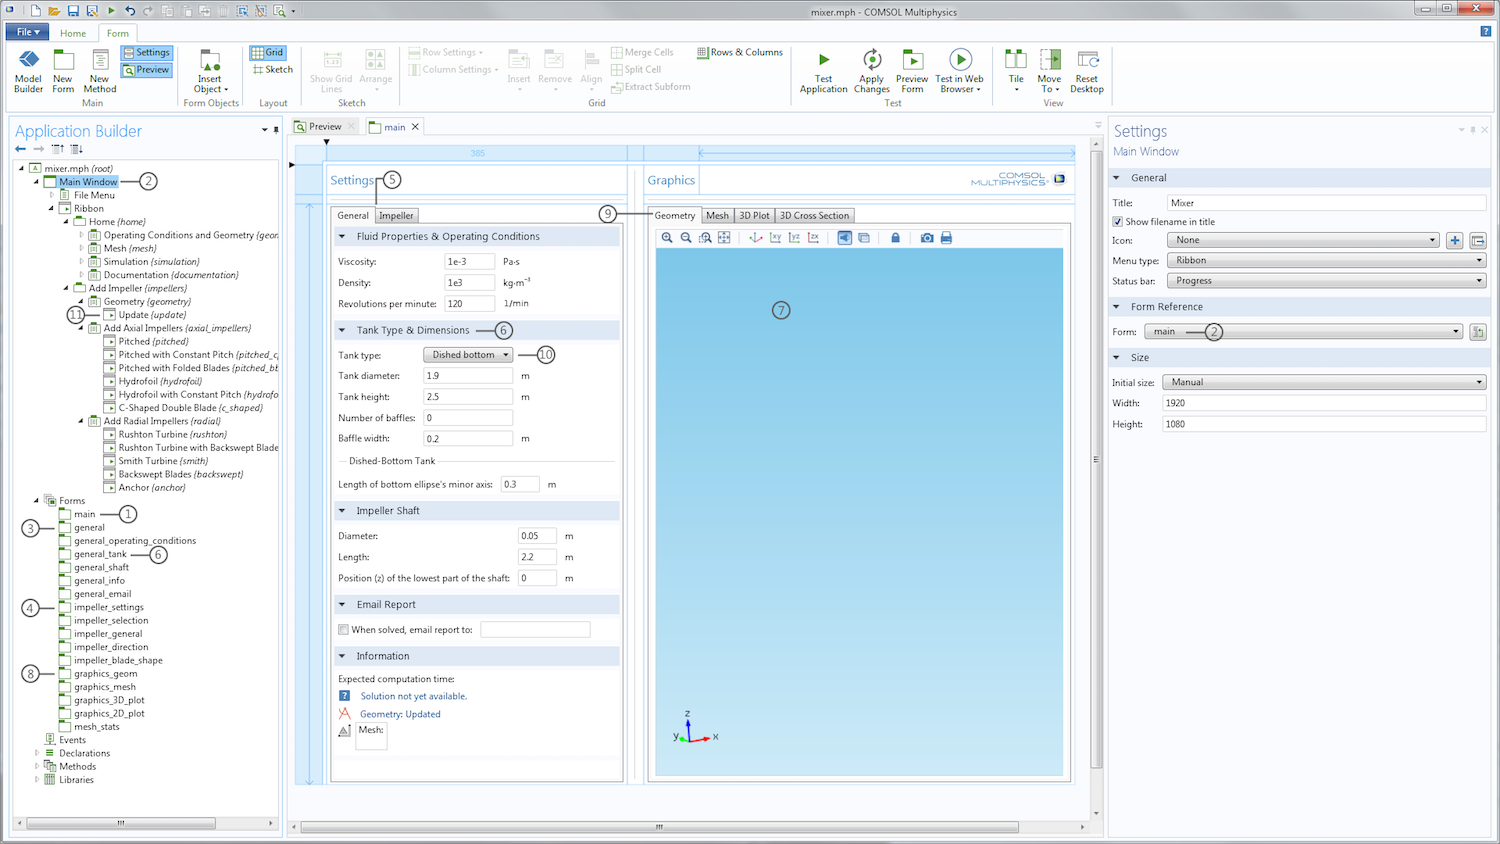 A screenshot showing the user interface (UI) of our COMSOL Multiphysics Mixer app.